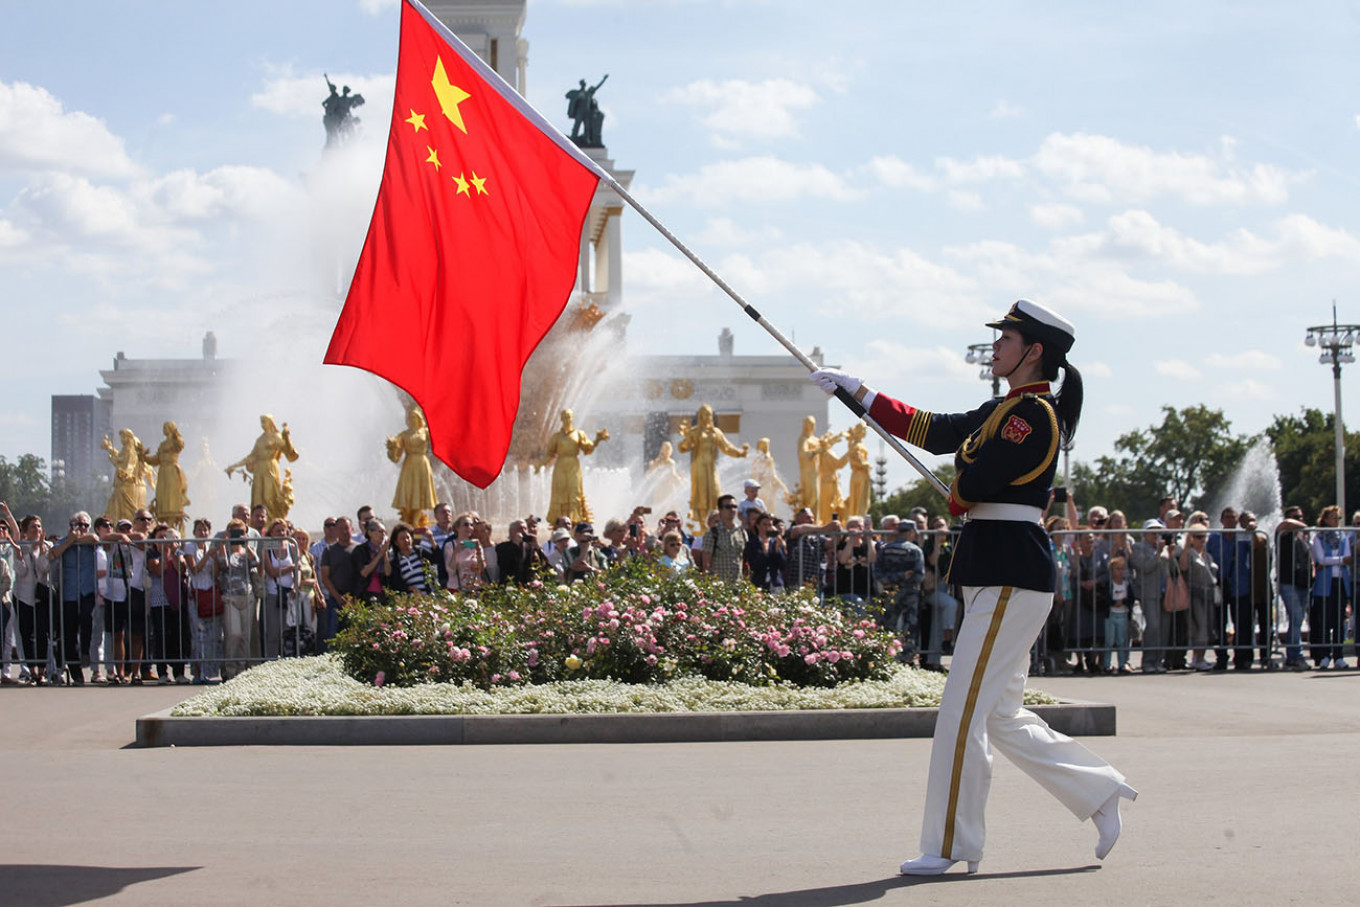 Russia Hosts International Military Band March-Off - The